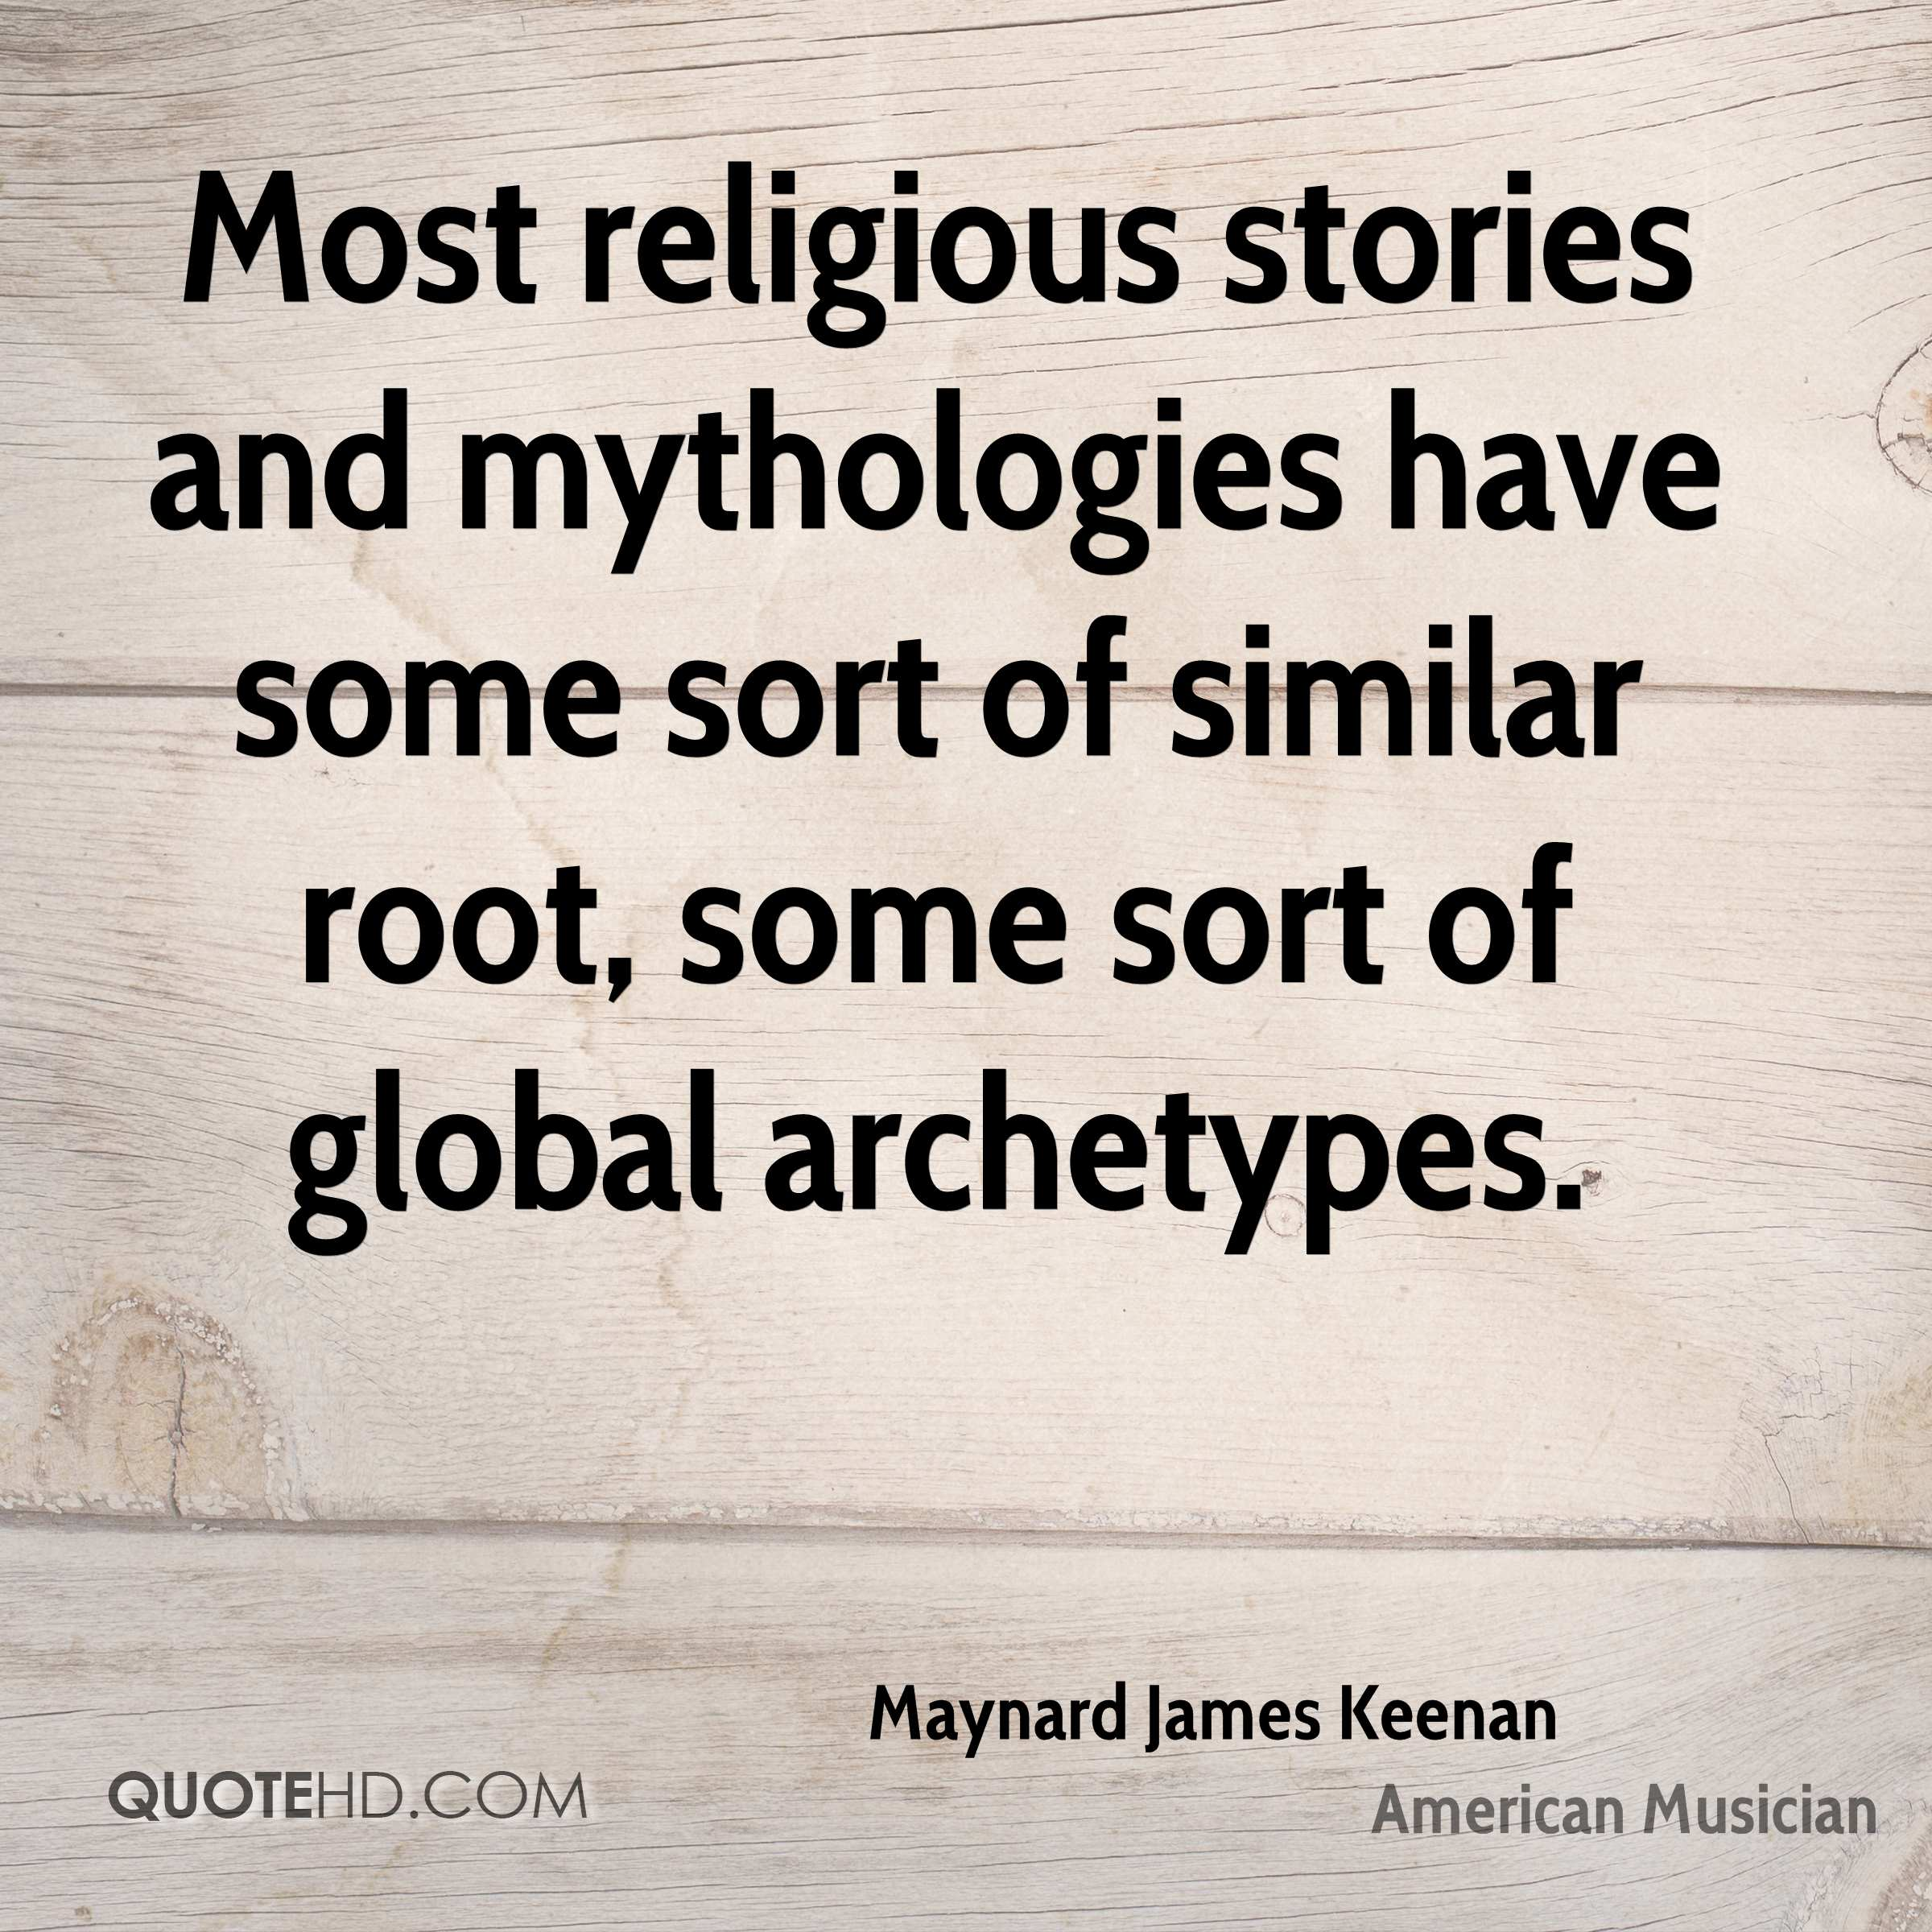 Most religious stories and mythologies have some sort of similar root, some sort of global archetypes.